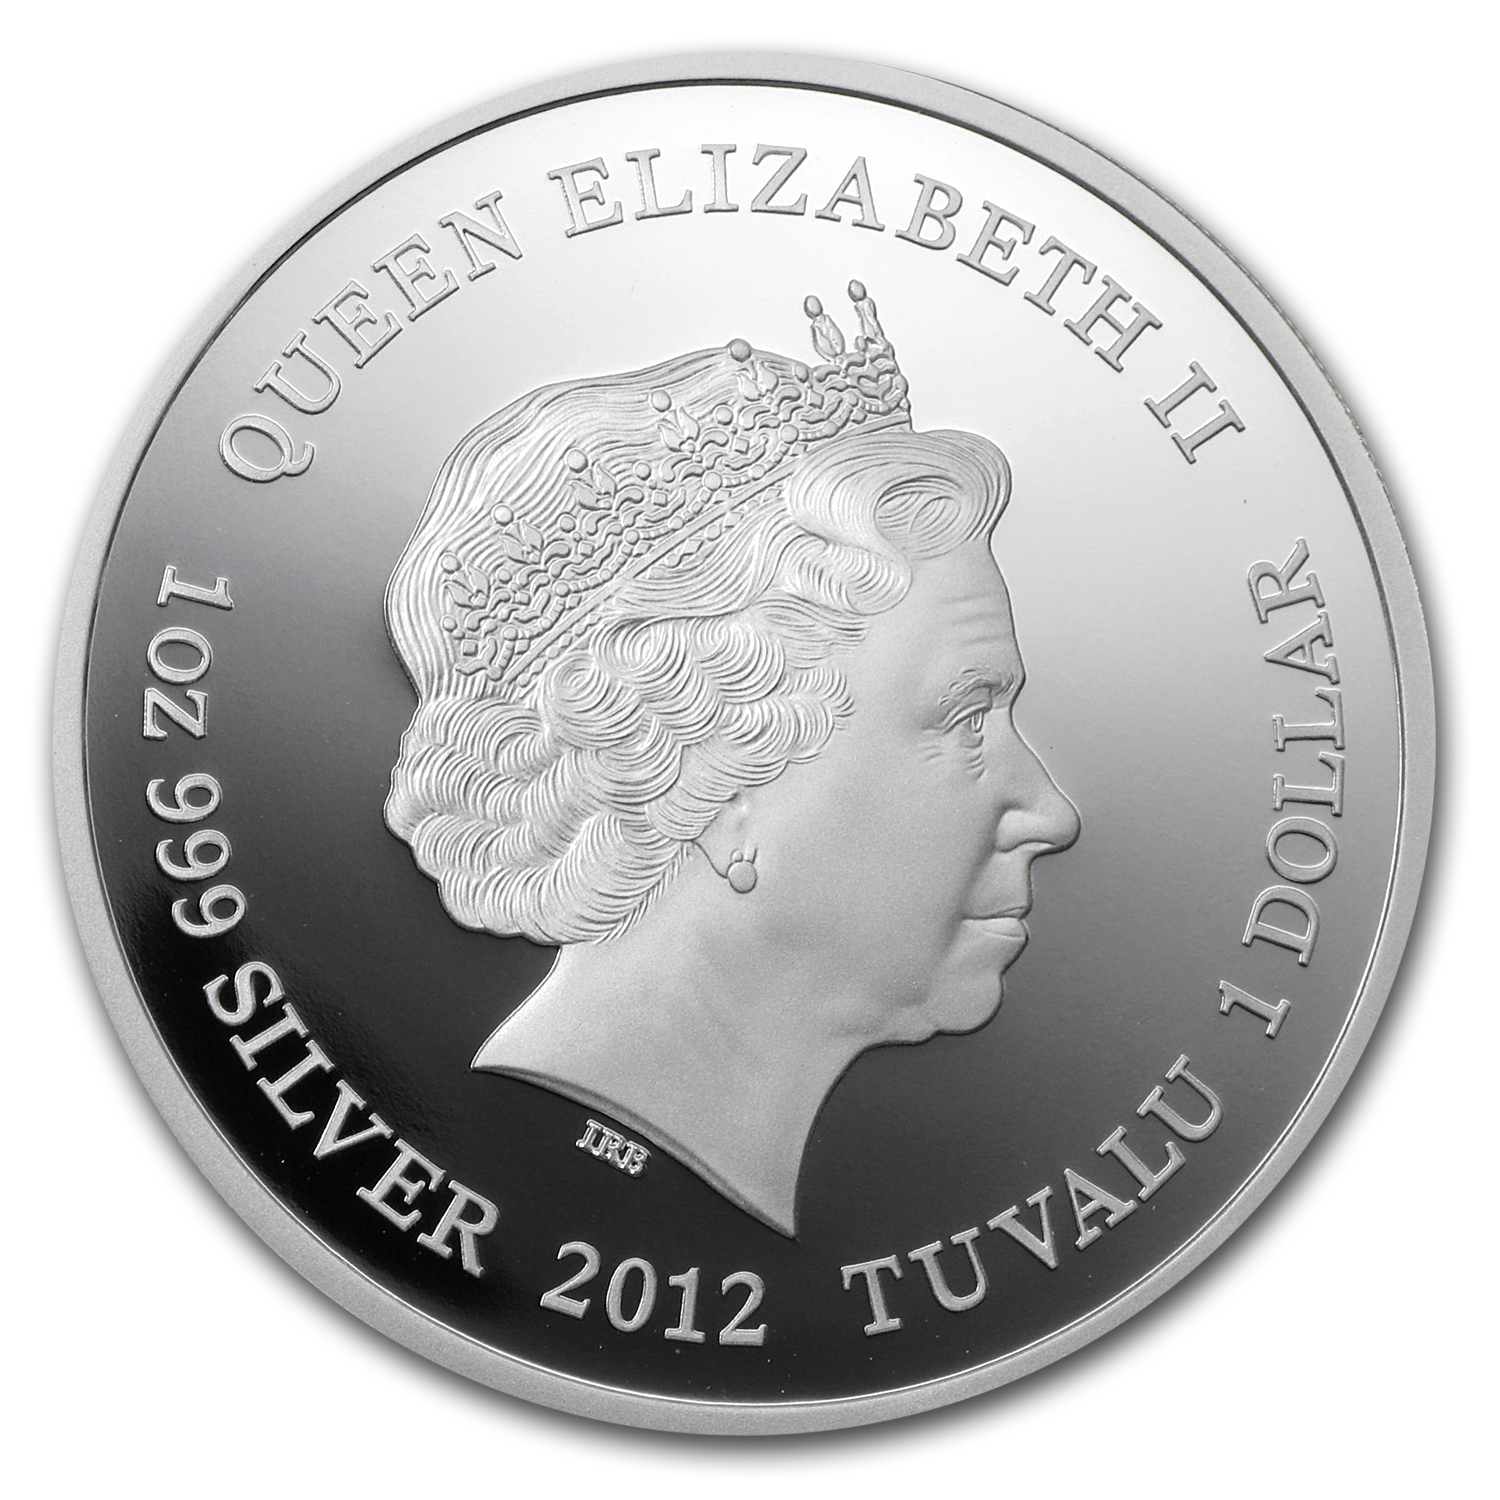 2012 Tuvalu 1 oz Silver Marilyn Monroe Proof